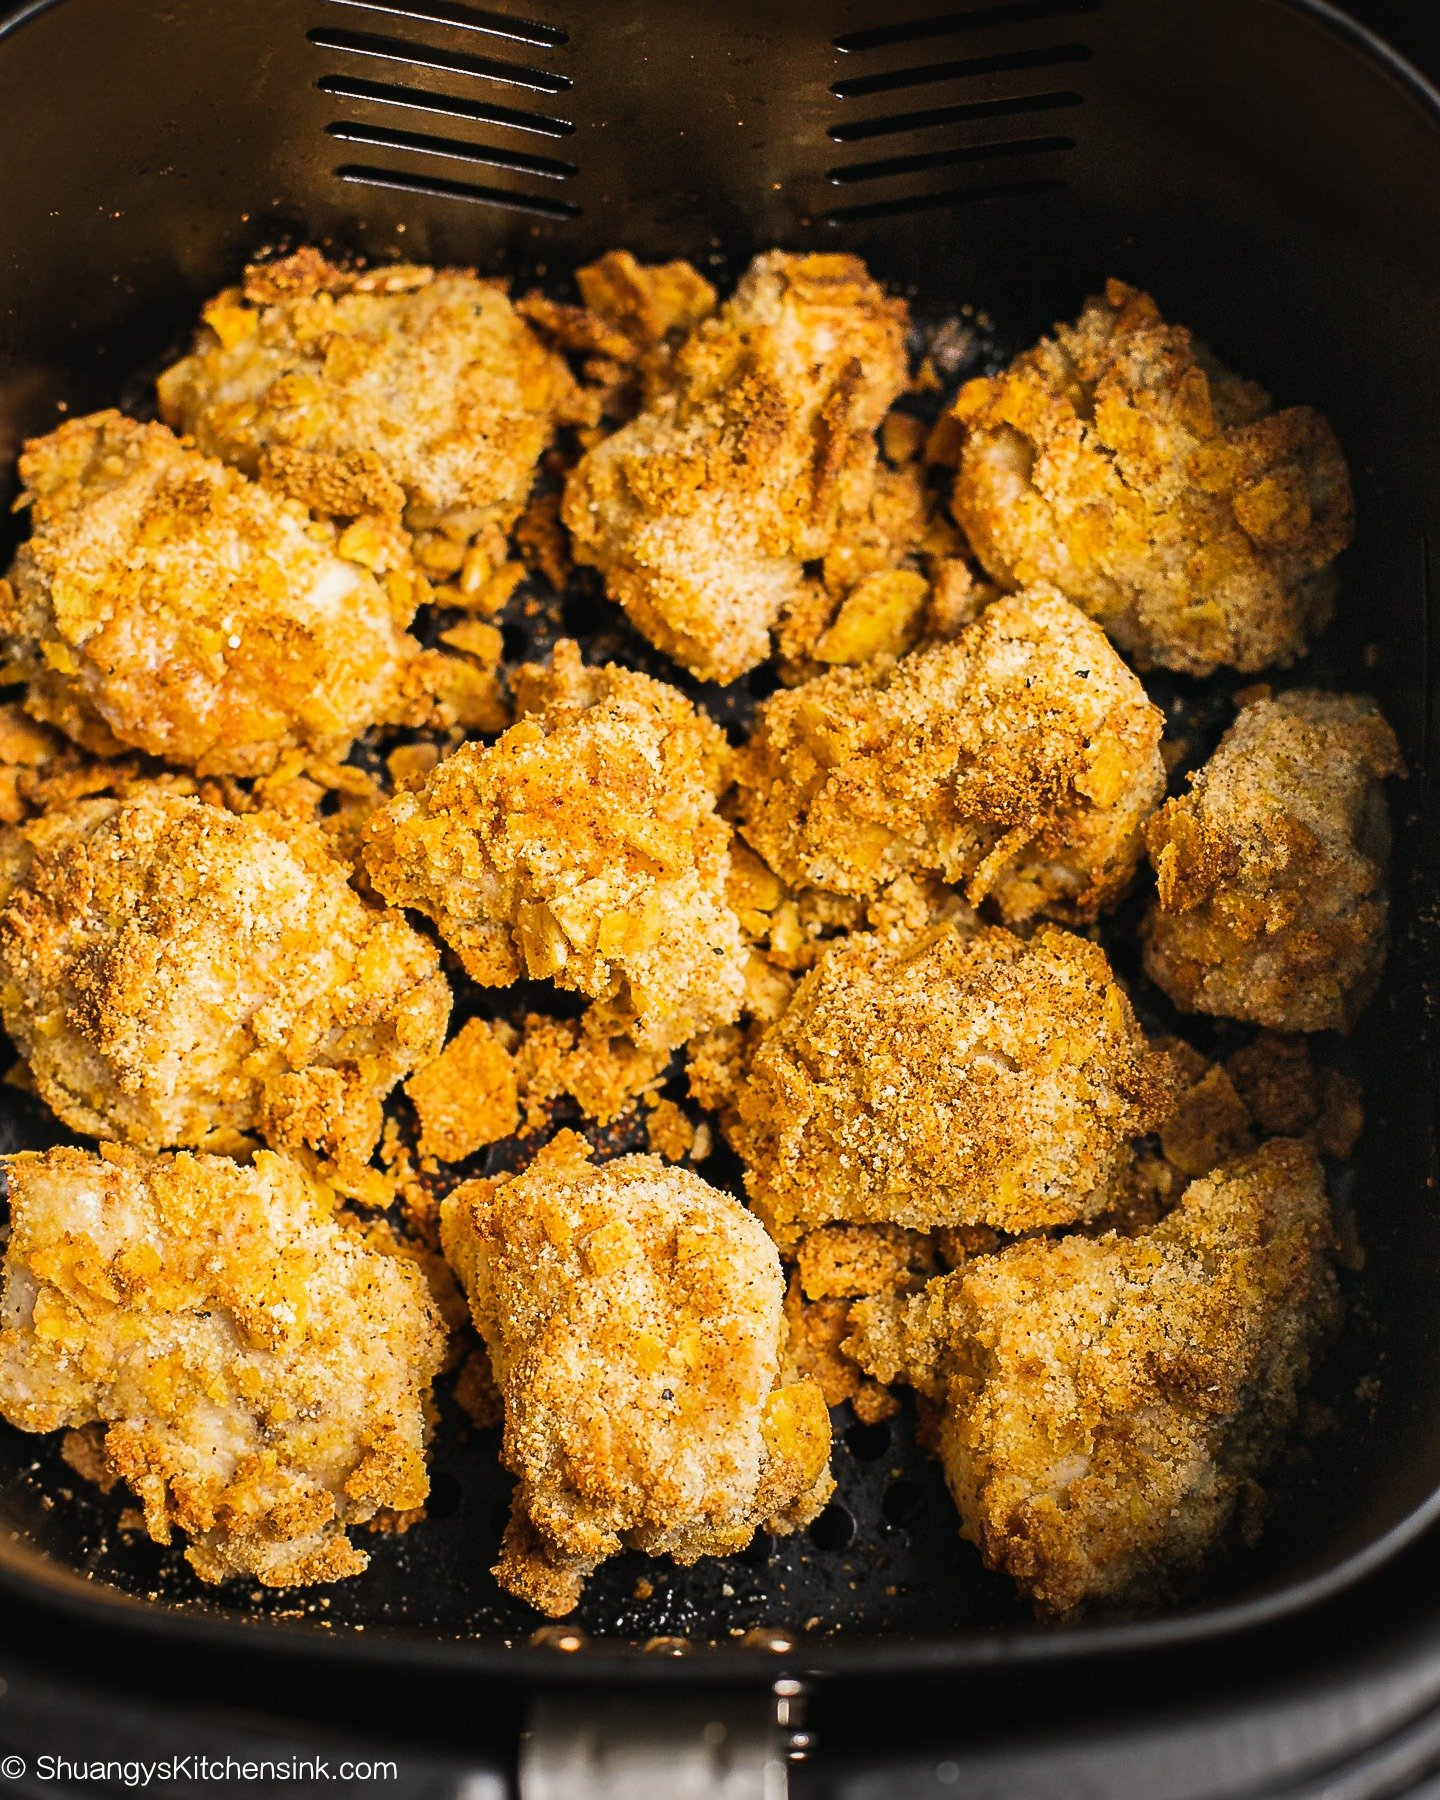 A basket of air fryer chicken nuggets that look crispy and golden brown on the outside.